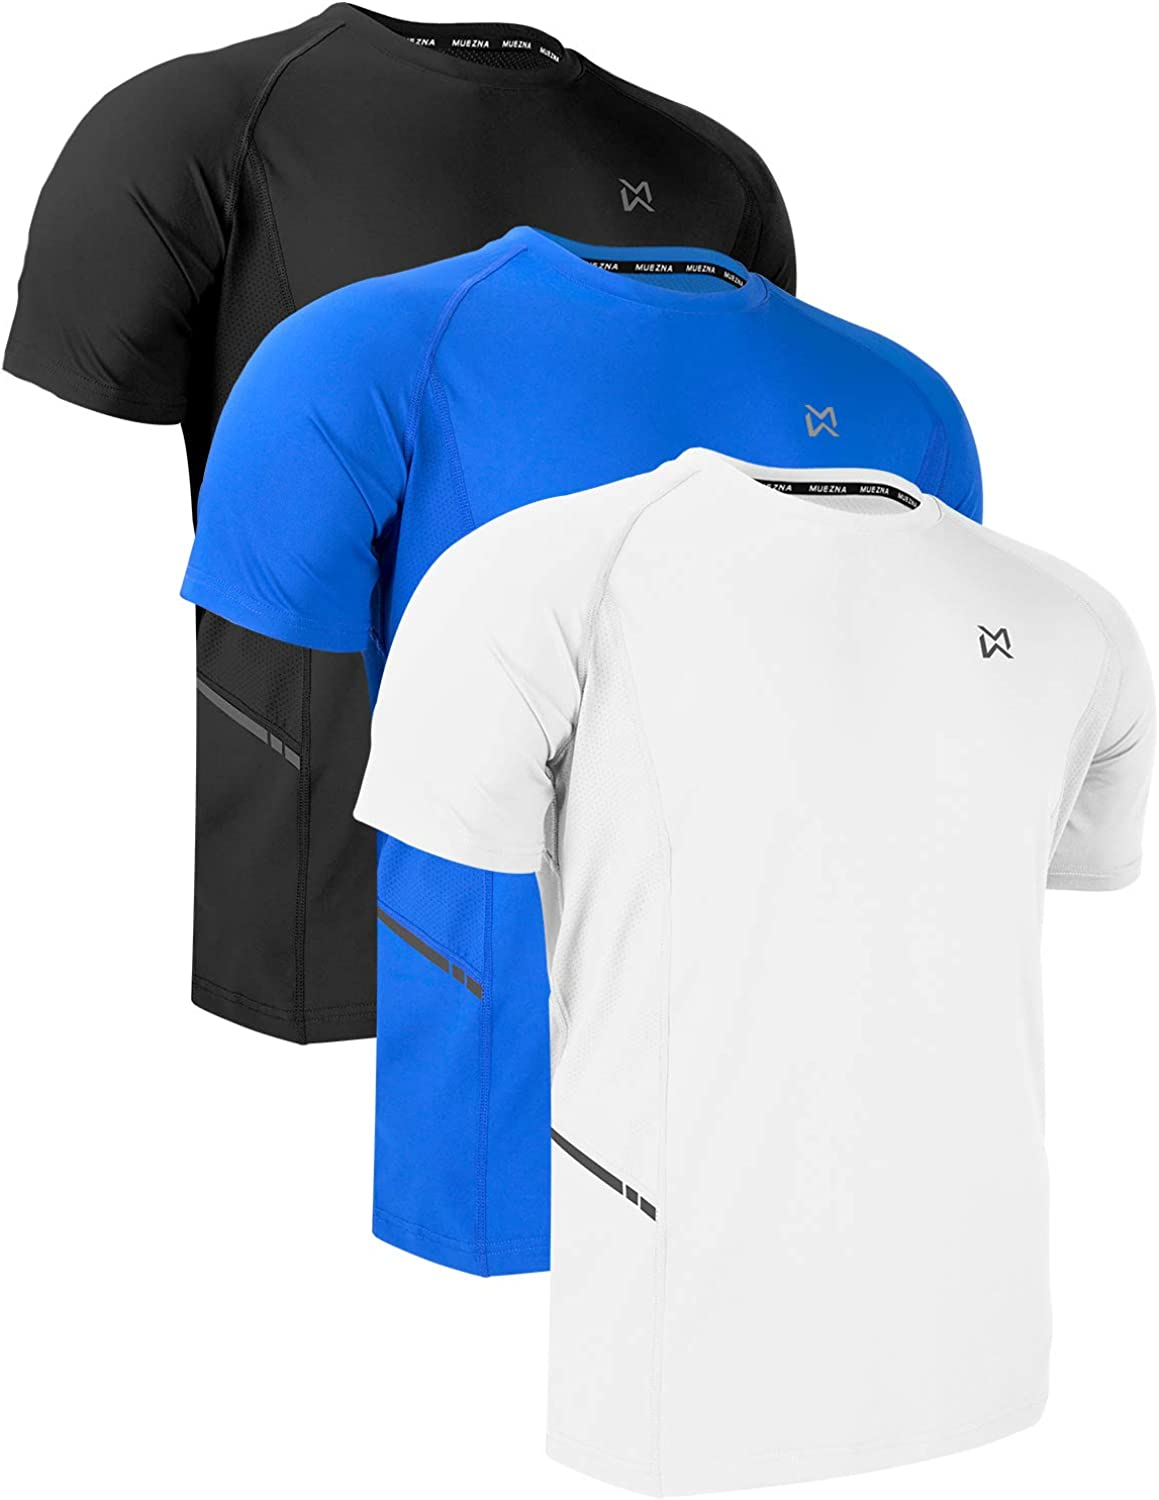 Men Dry-Fit Running Workout T-Shirt Short Sleeve Athletic Gym Training Tee for Men: Clothing